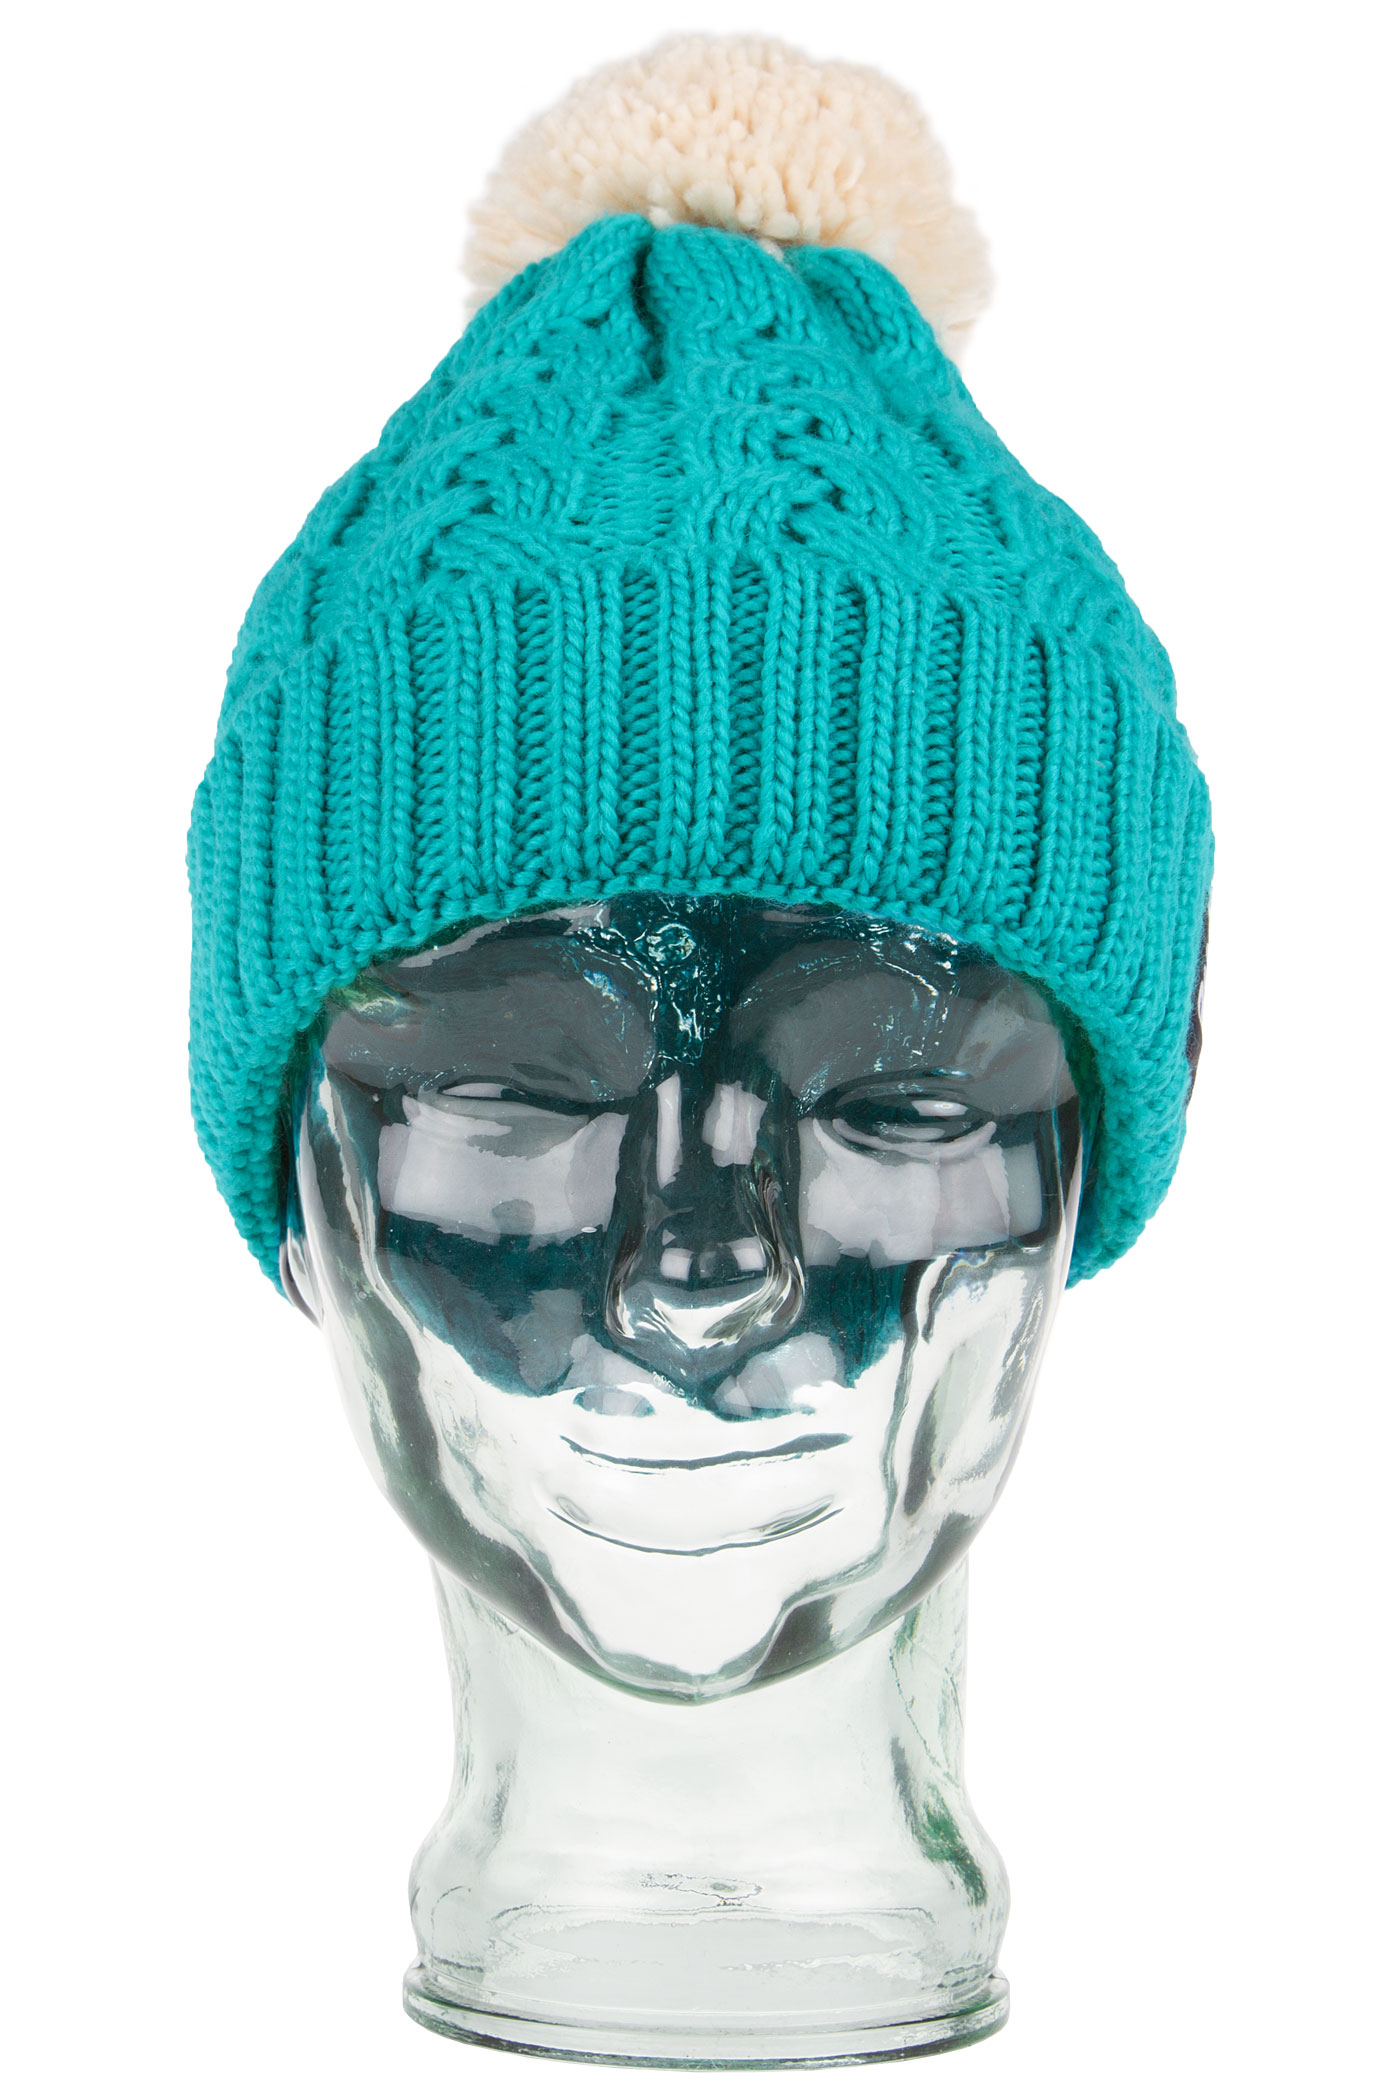 Knitty : Home Page Accessories Beanies SK8DLX Knitty Beanie (green fog)